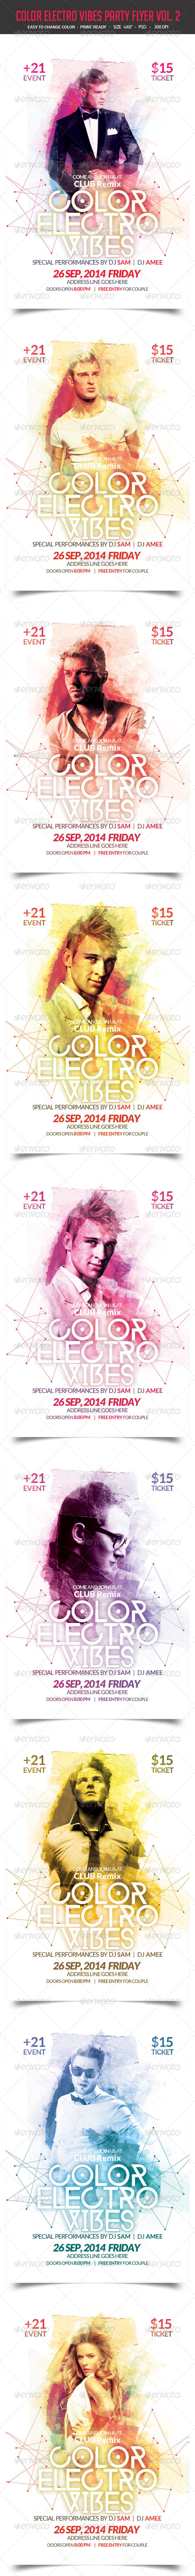 GraphicRiver Color Electro Vibes Party Flyer Vol 2 8754250